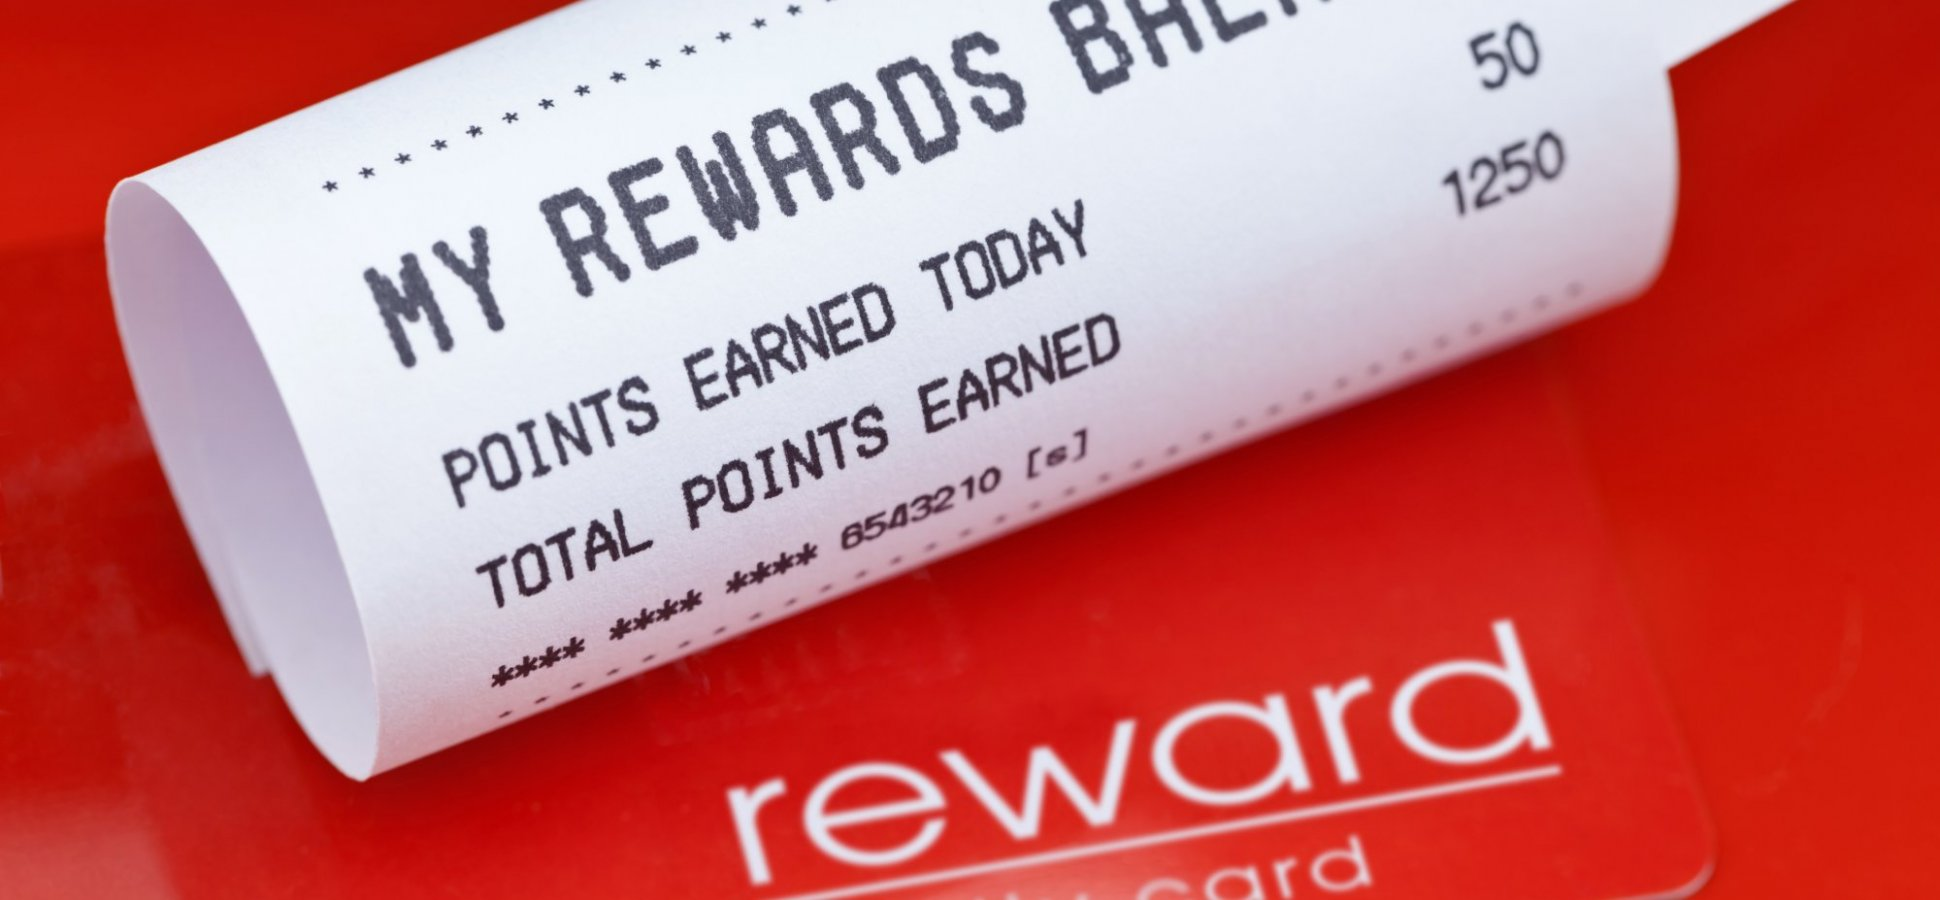 Forget Shoppers Cards, Rewards Programs Are About to Get A Digital Age Upgrade